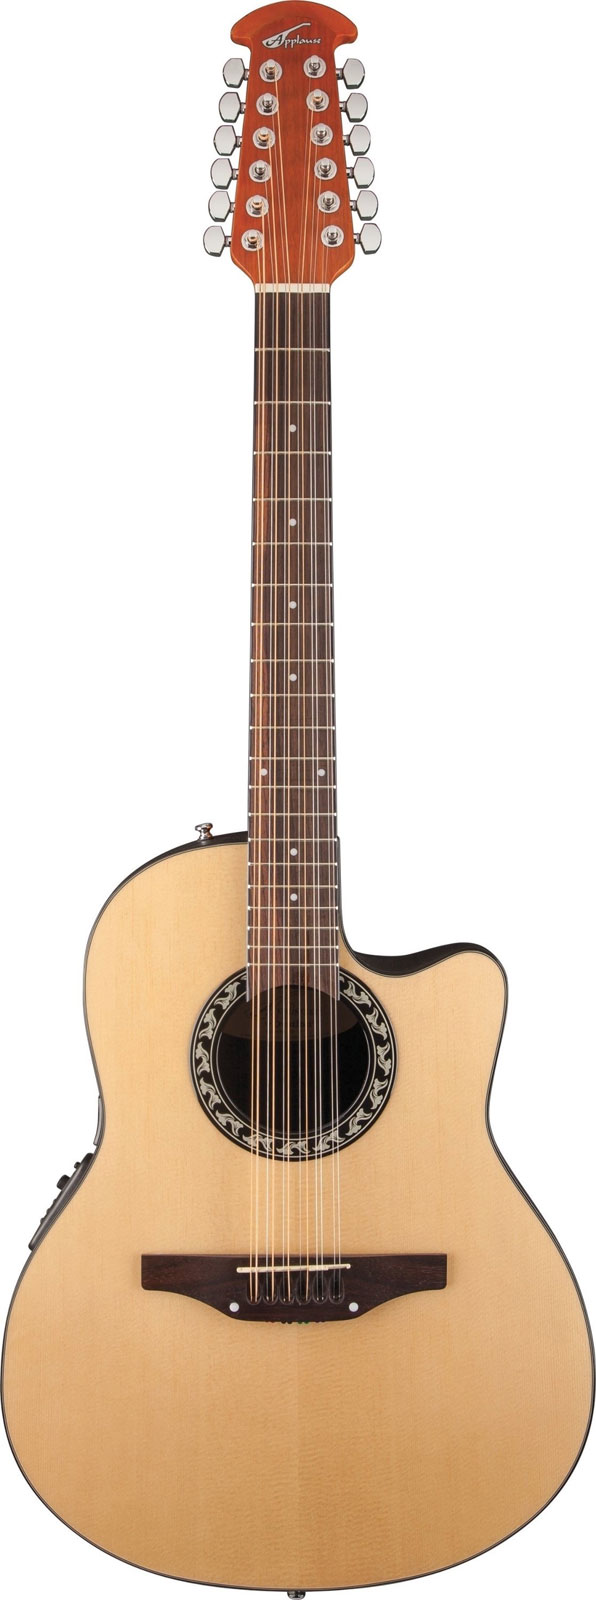 OVATION APPLAUSE BALLADEER 12 STRING AB2412II NATURAL